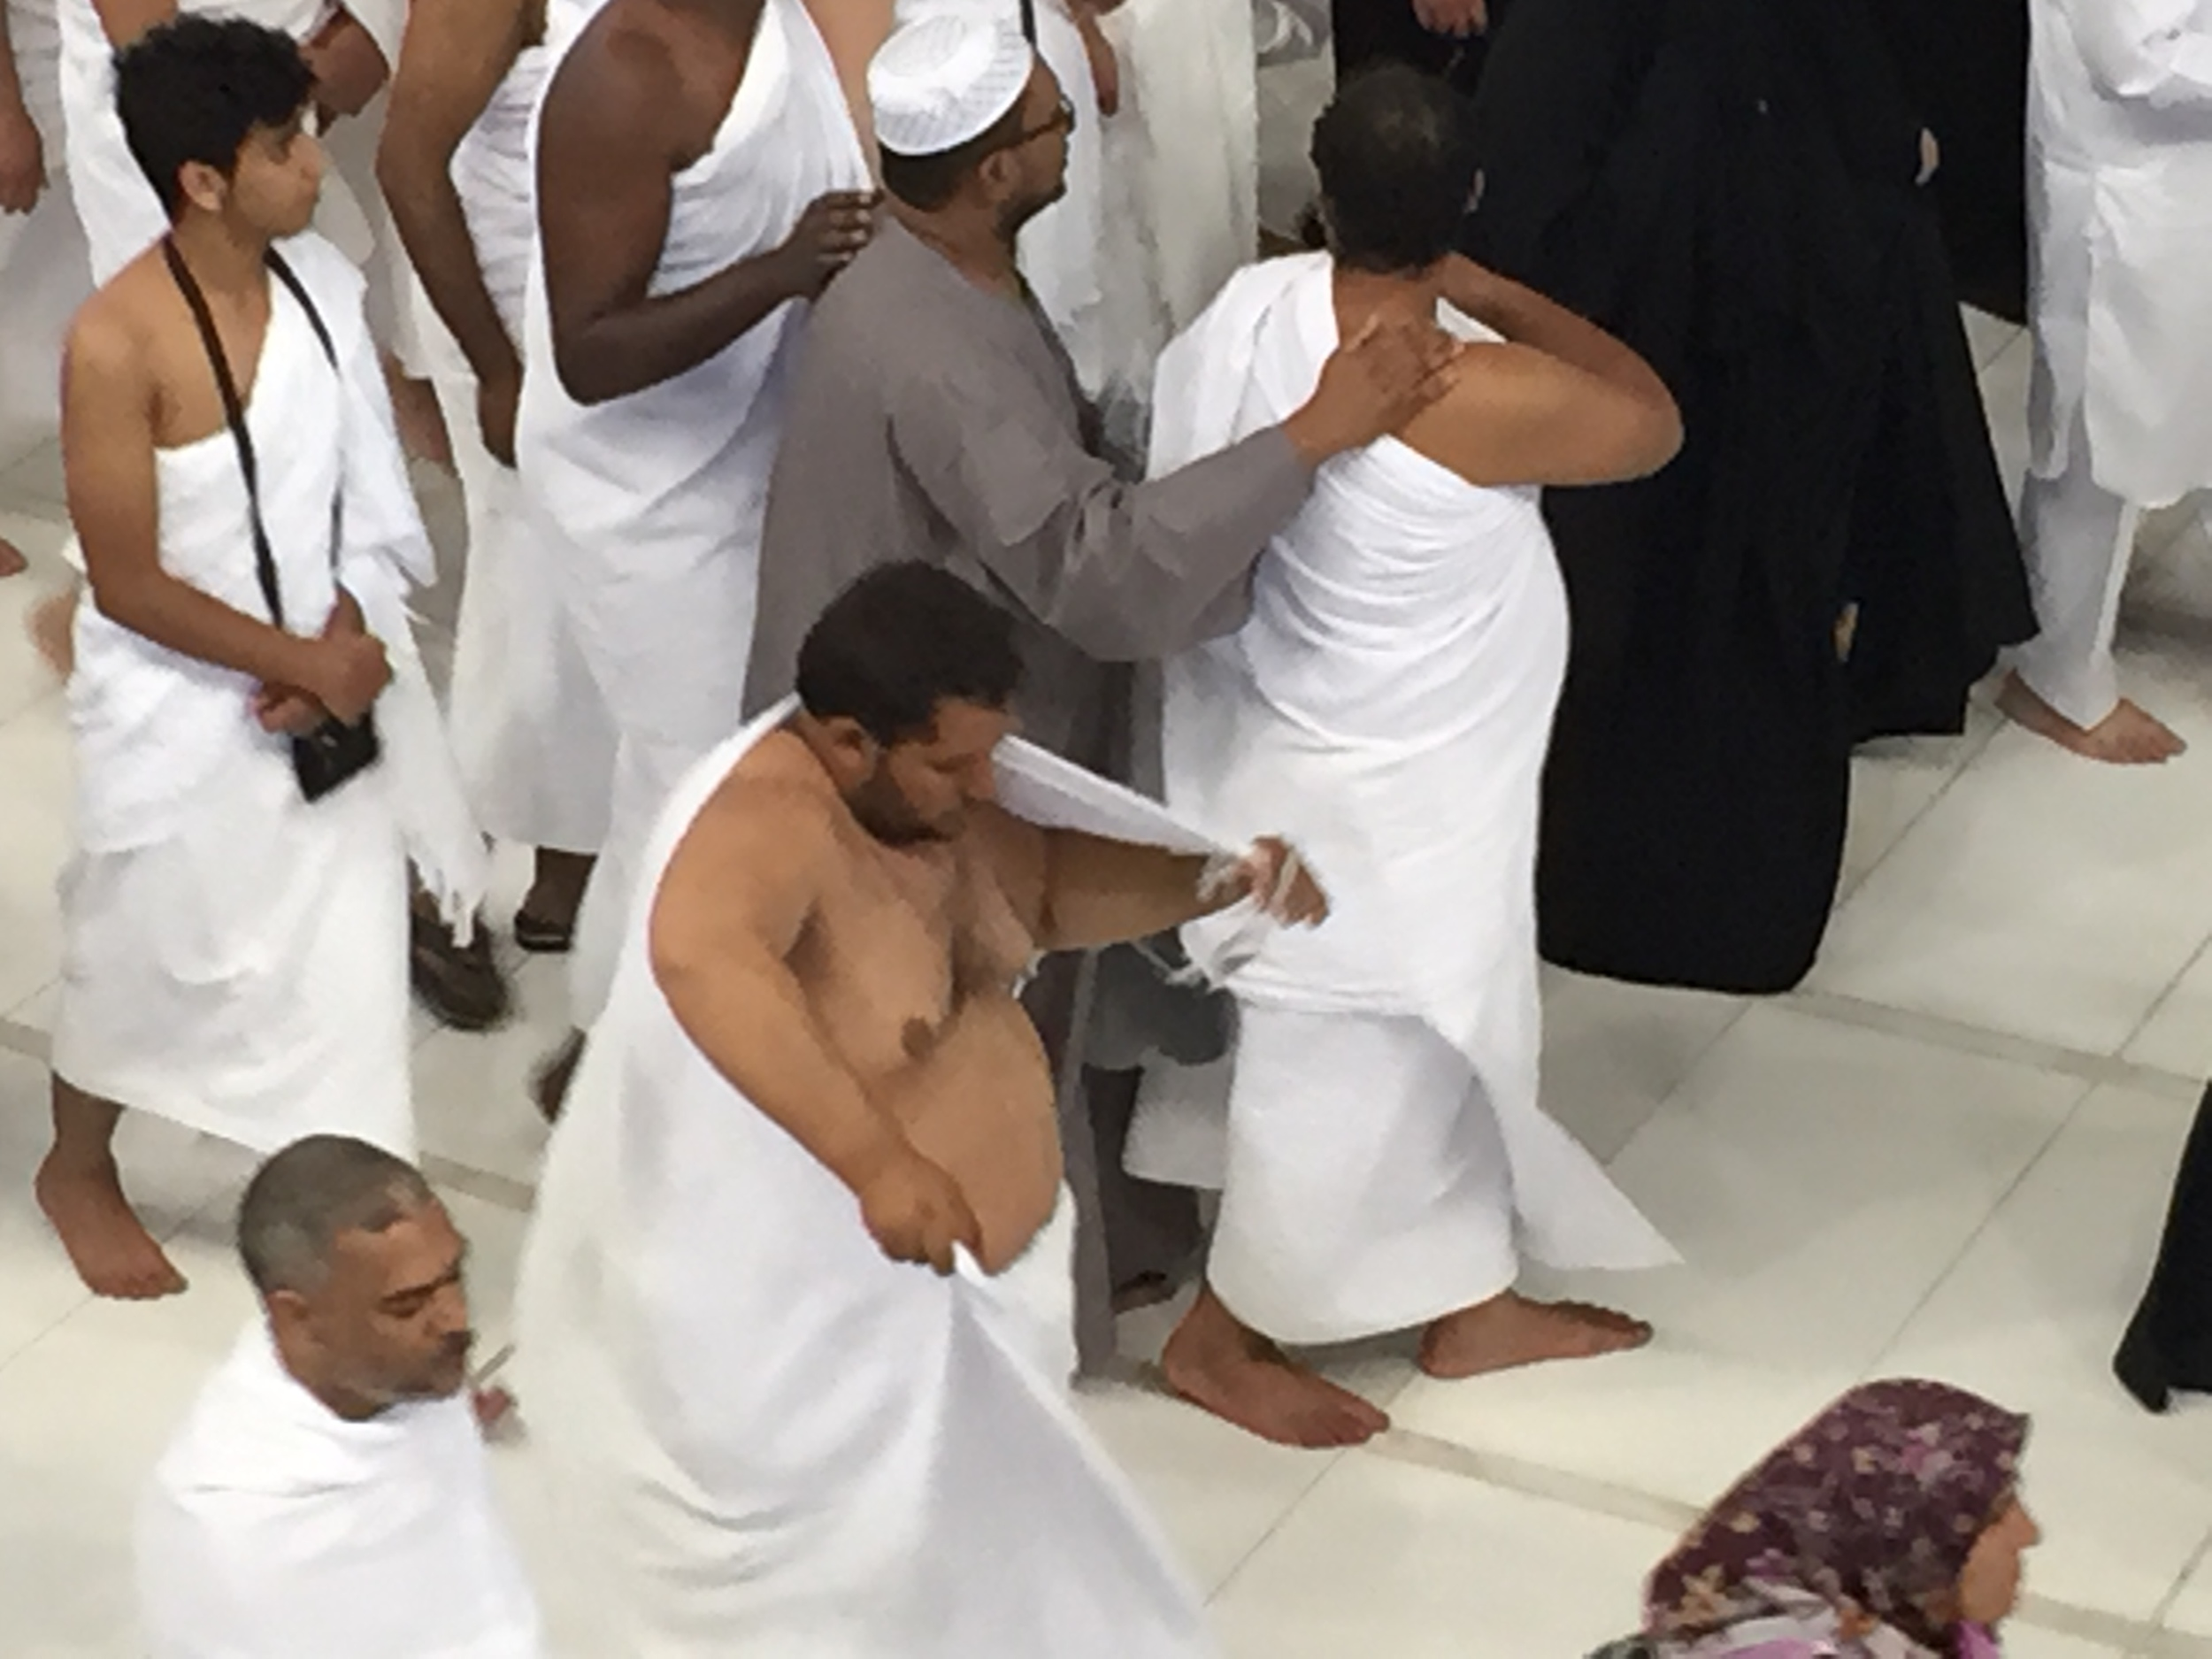 Men in Irham doing tawaf